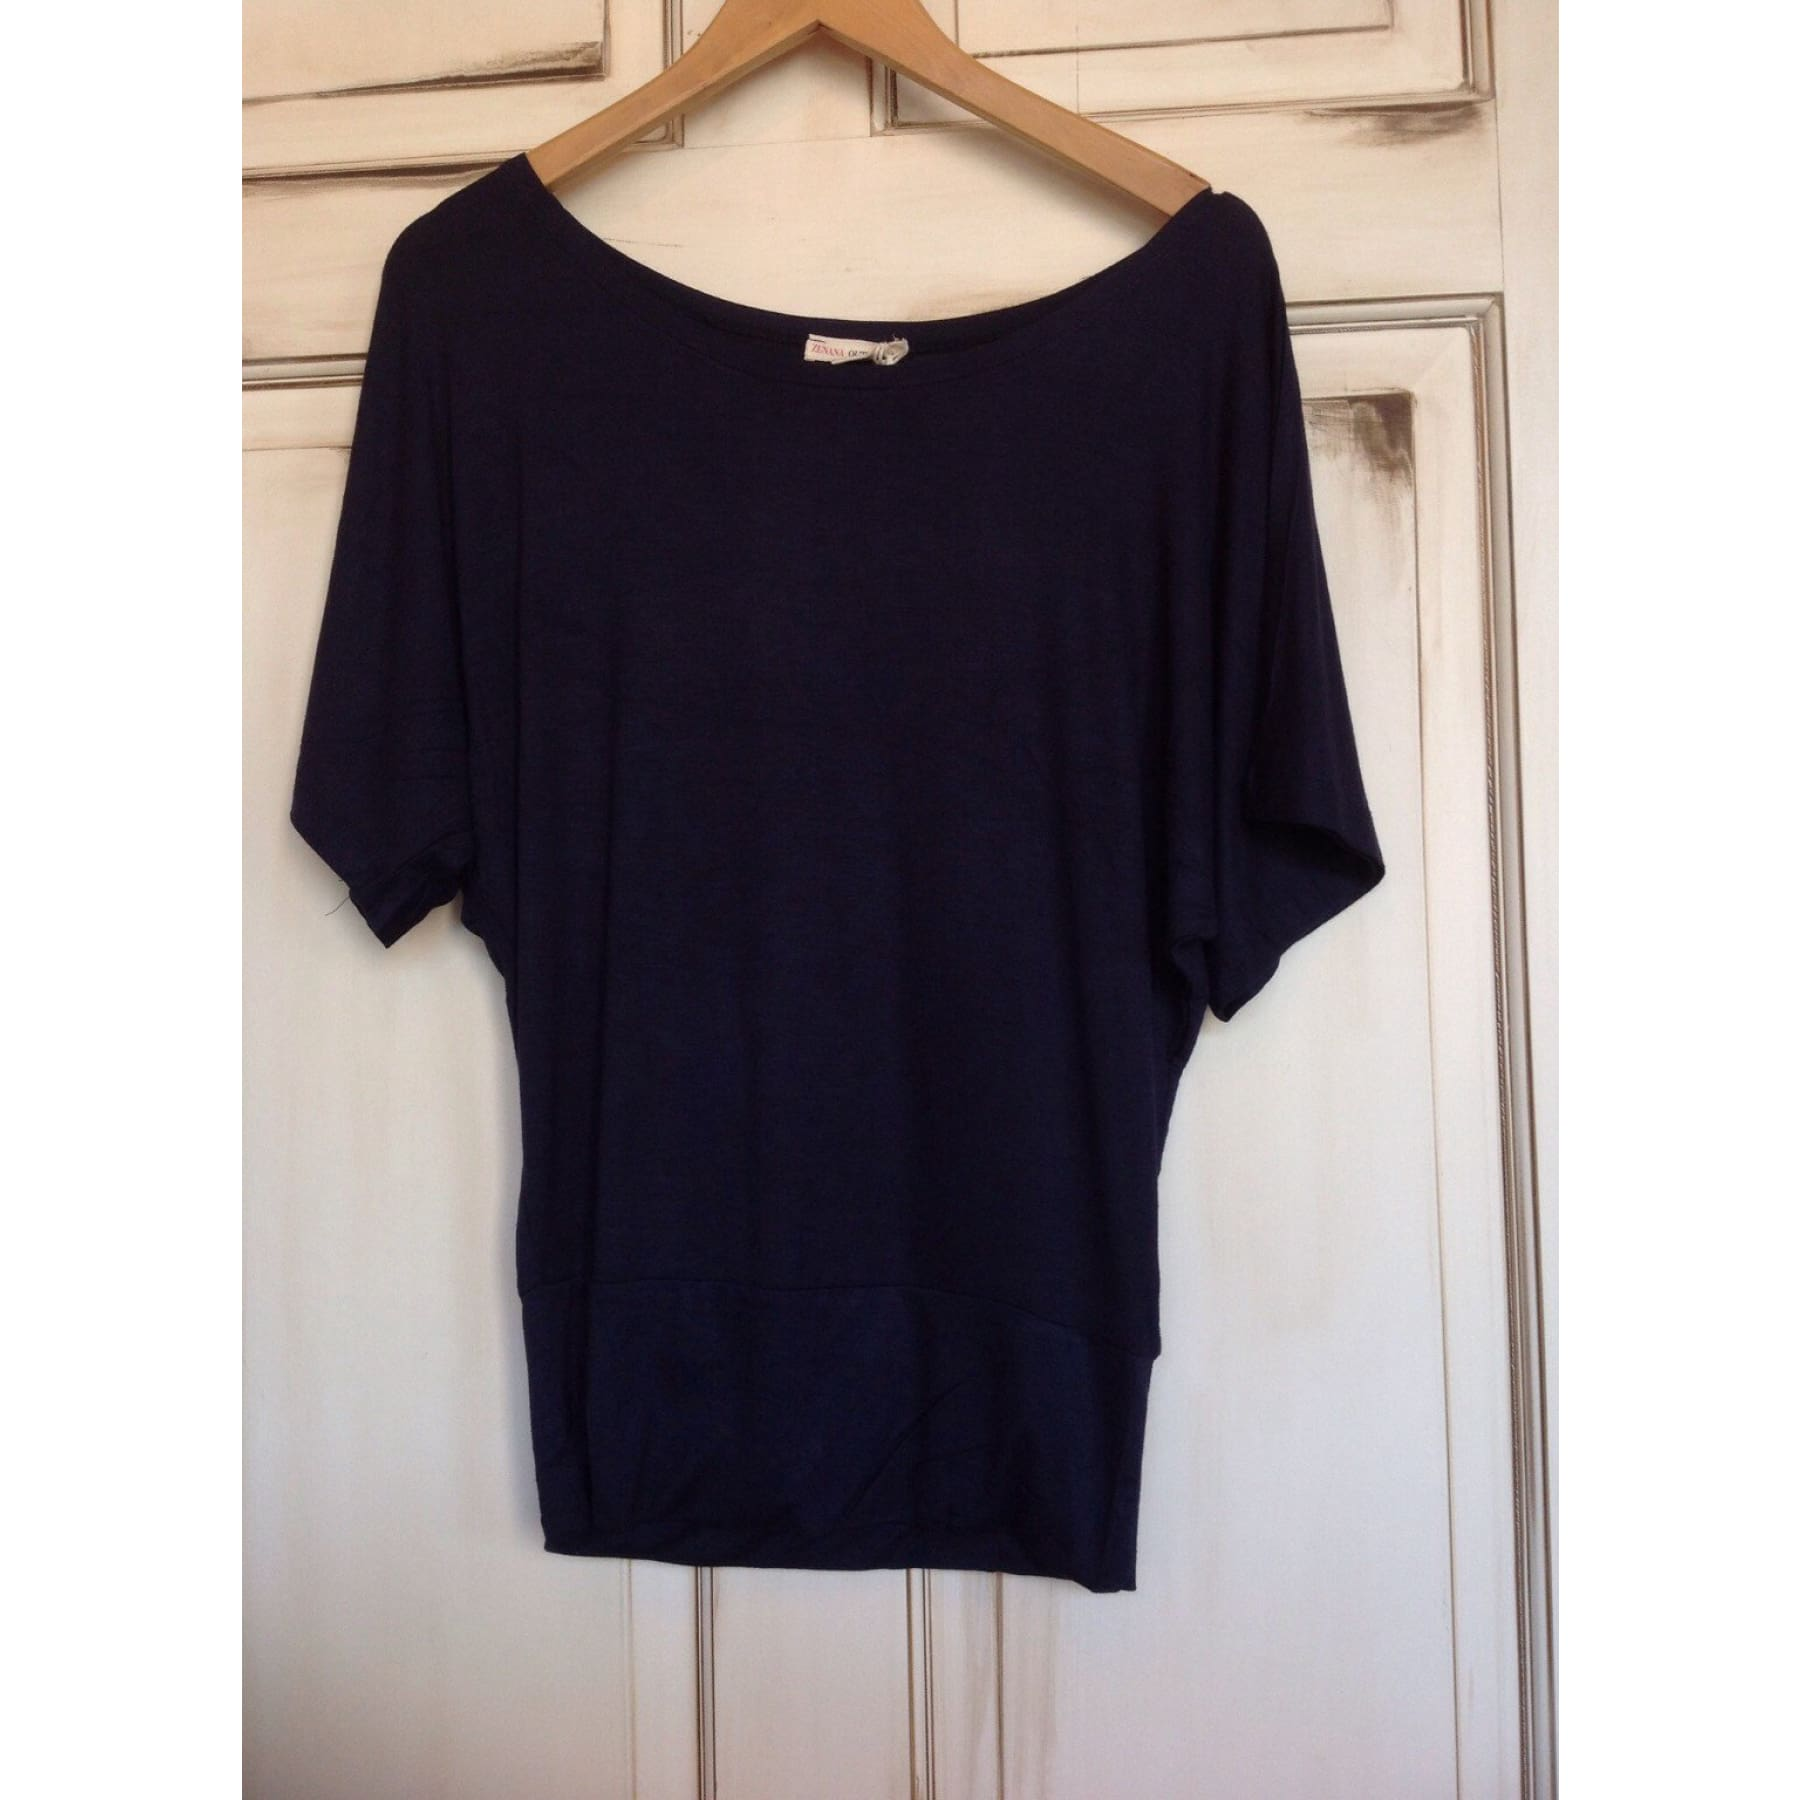 Basic Slouch Shirt, - Dirt Road Divas Boutique